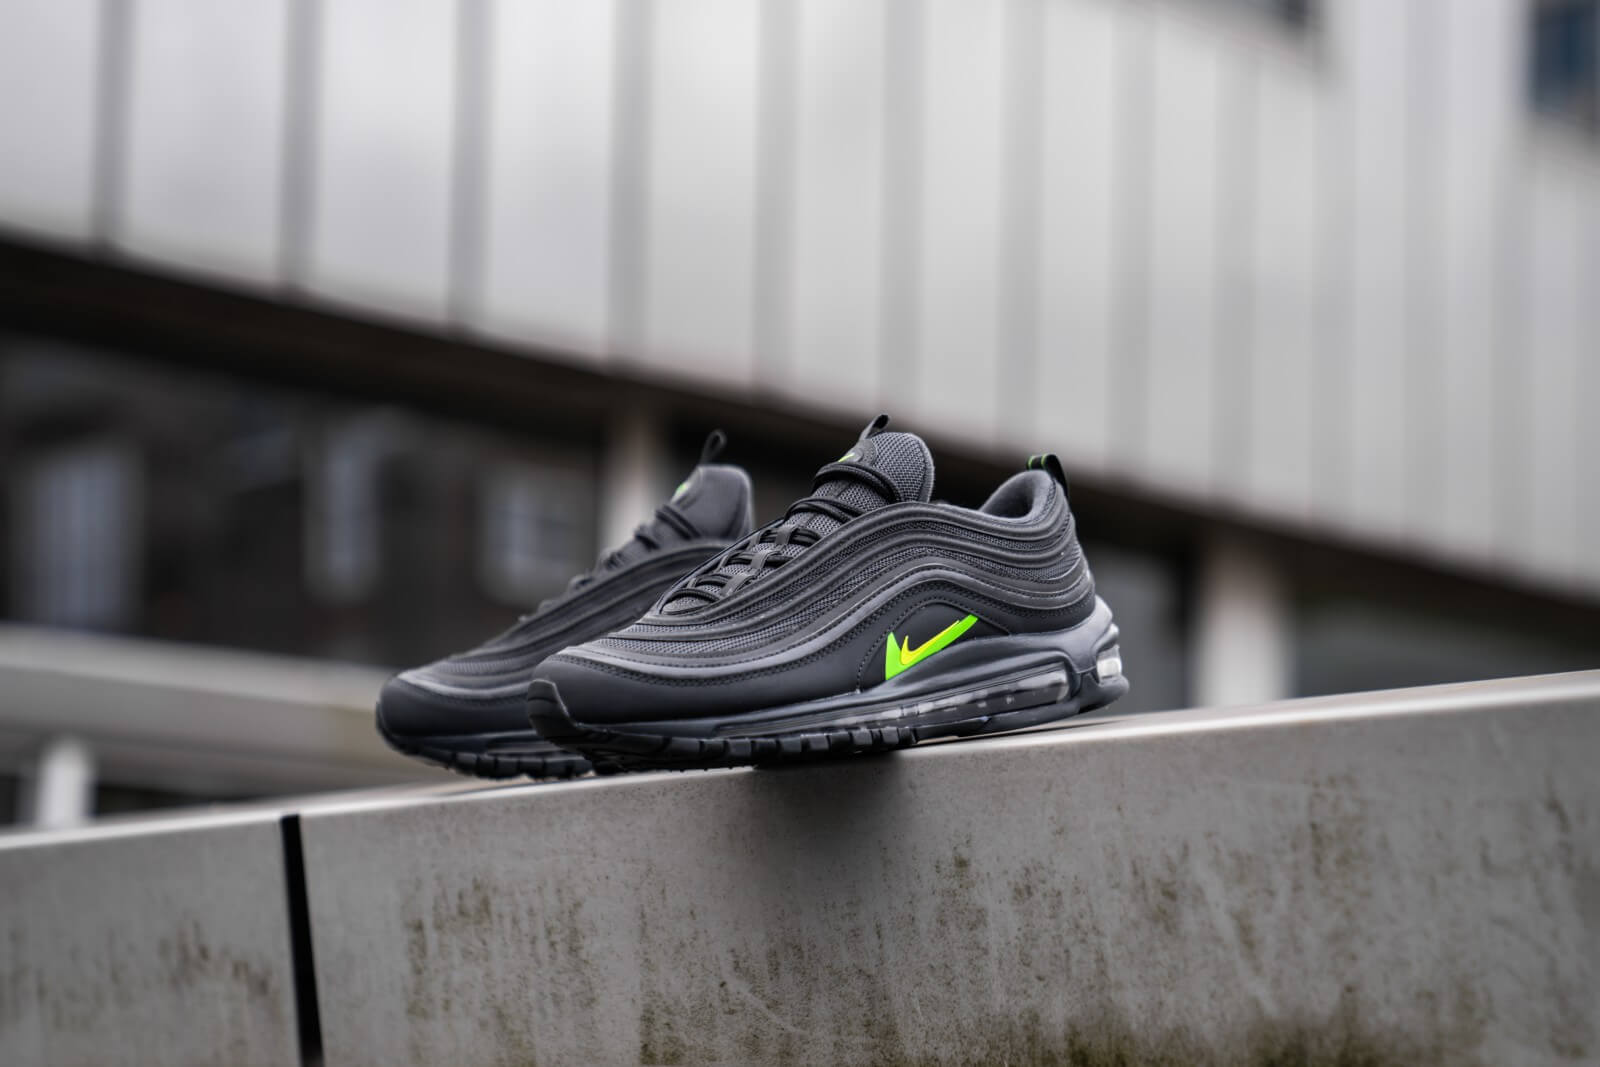 Nike Air Max 97 AnthraciteVolt Electric Green CT2205 002